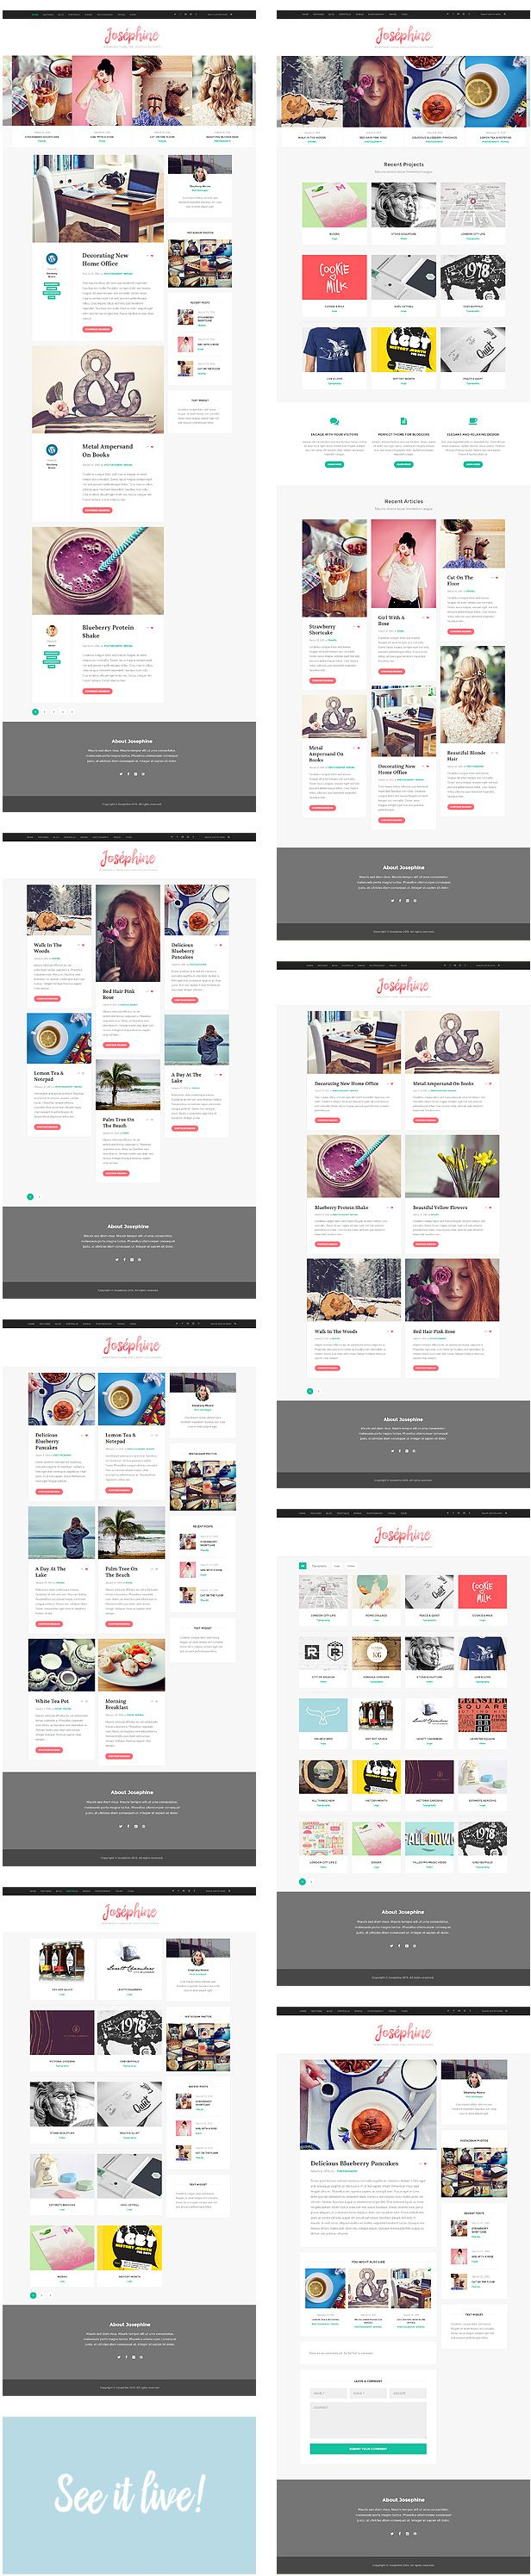 Josephine - WordPress Theme For Lifestyle Bloggers   ThemeForest - Love the way the top bar works.